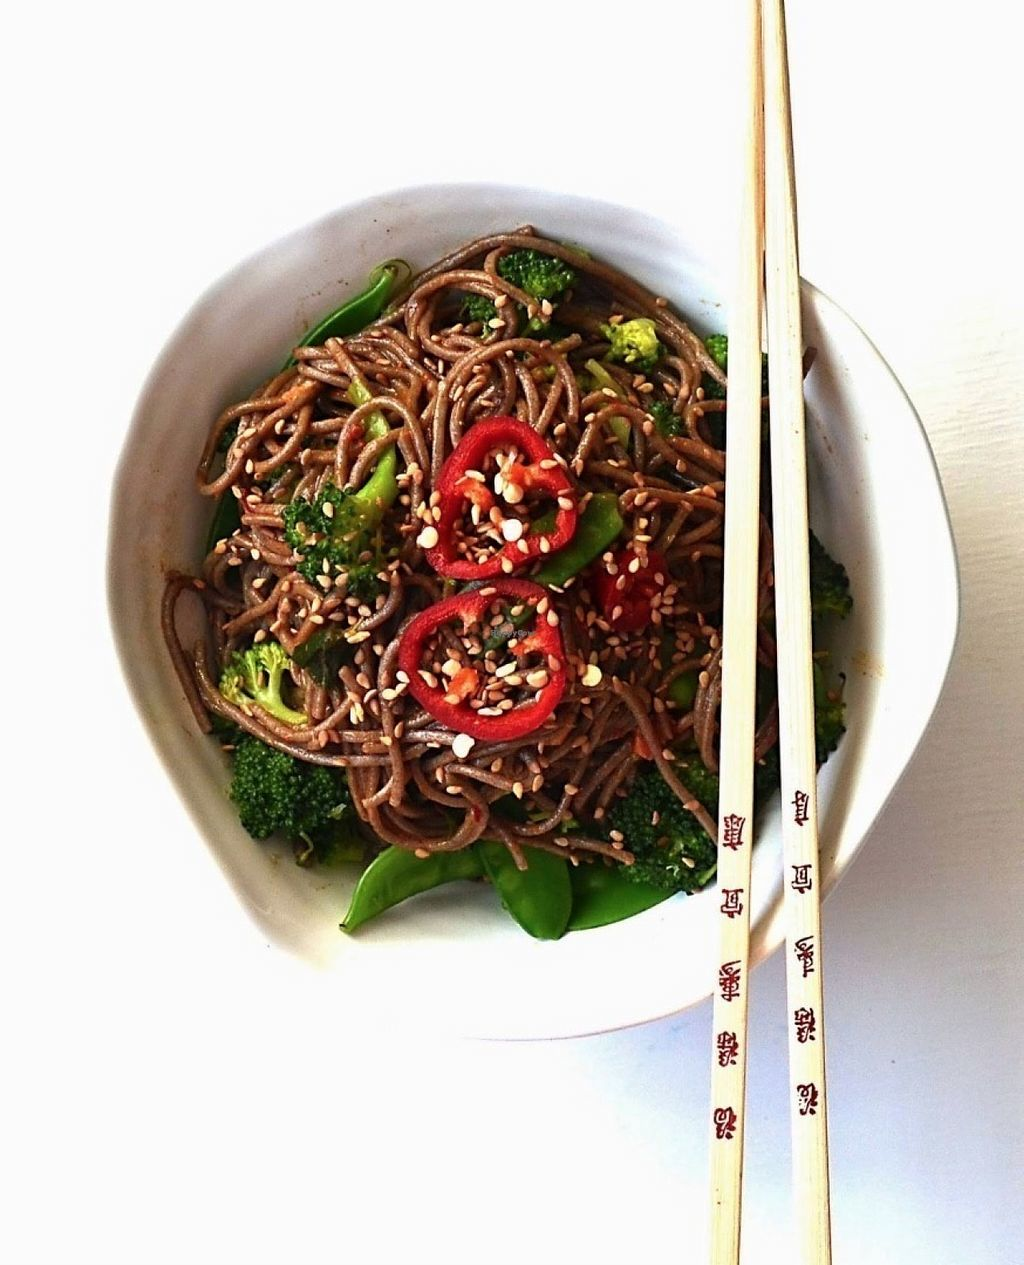 """Photo of VeganJa  by <a href=""""/members/profile/community"""">community</a> <br/>soba noodles  <br/> July 25, 2016  - <a href='/contact/abuse/image/76749/162098'>Report</a>"""